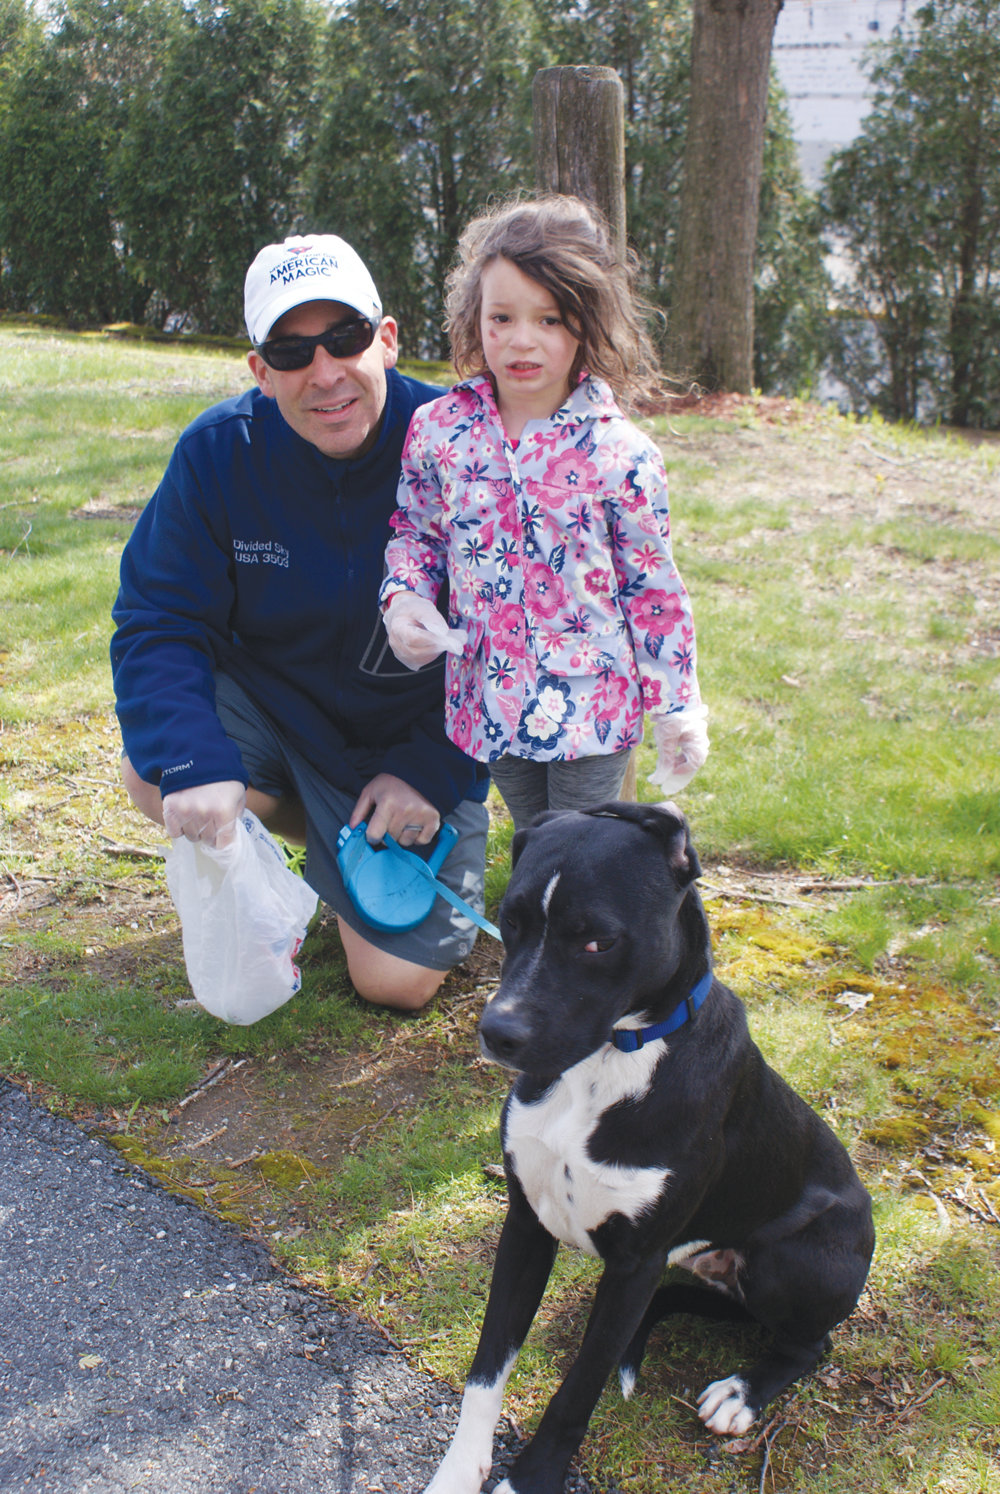 A FAMILY MATTER: Cranston Police Capt. Vin McAteer, his daughter, 3-year-old Helena, and their dog, Ranger, share a moment during the recent cleanup.